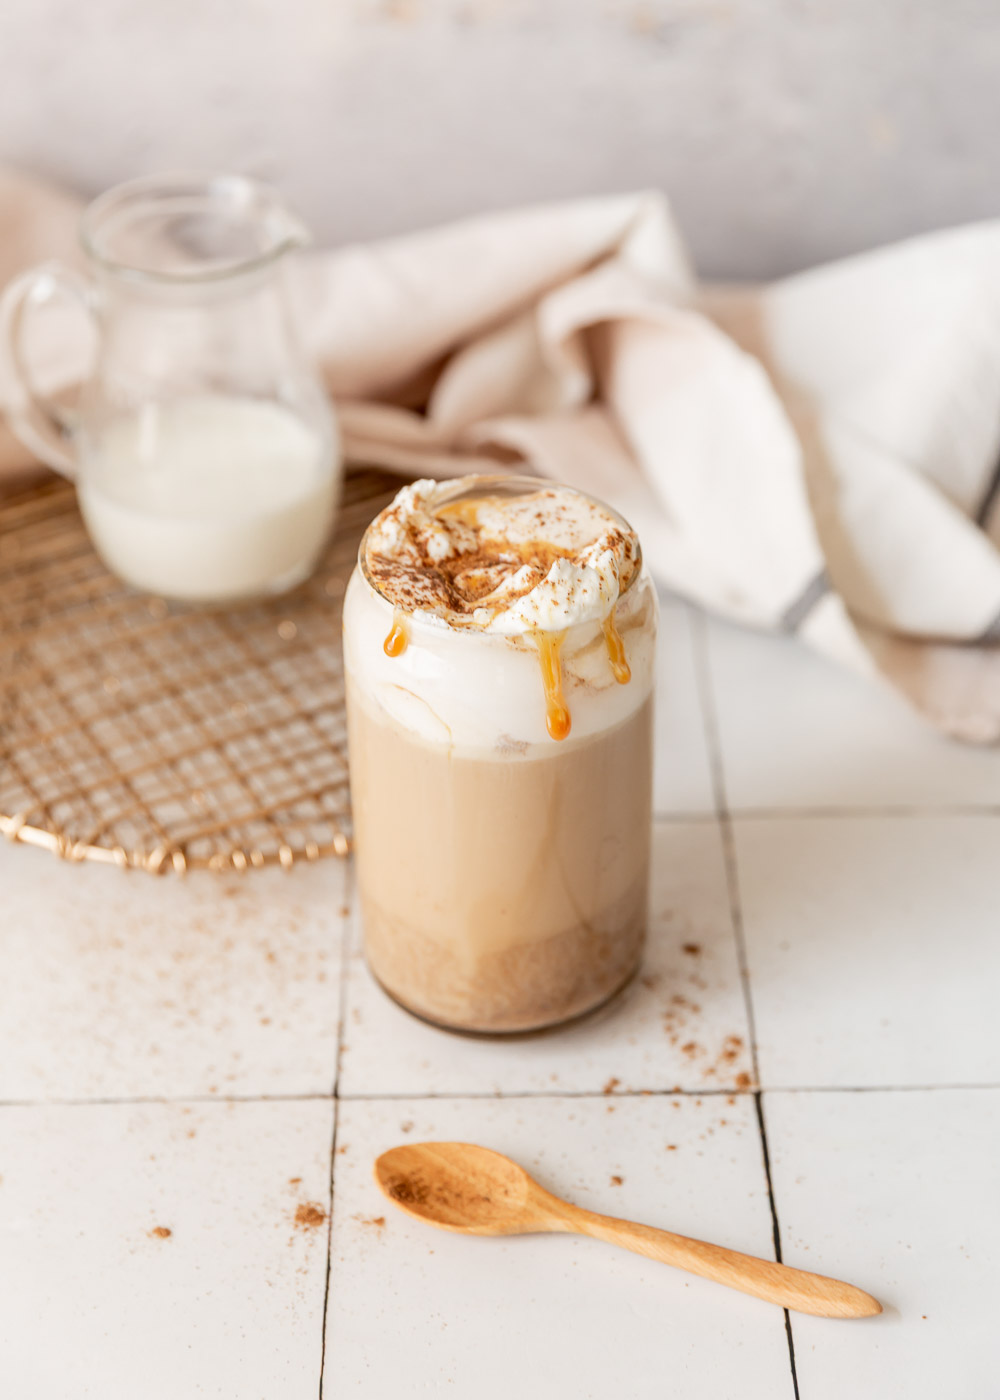 The Best Homemade Pumpkin Spice Latte - a healthier homemade twist on a favorite fall-inspired coffee that you can make at home. It is easy to make and better for you than the store-bought version.